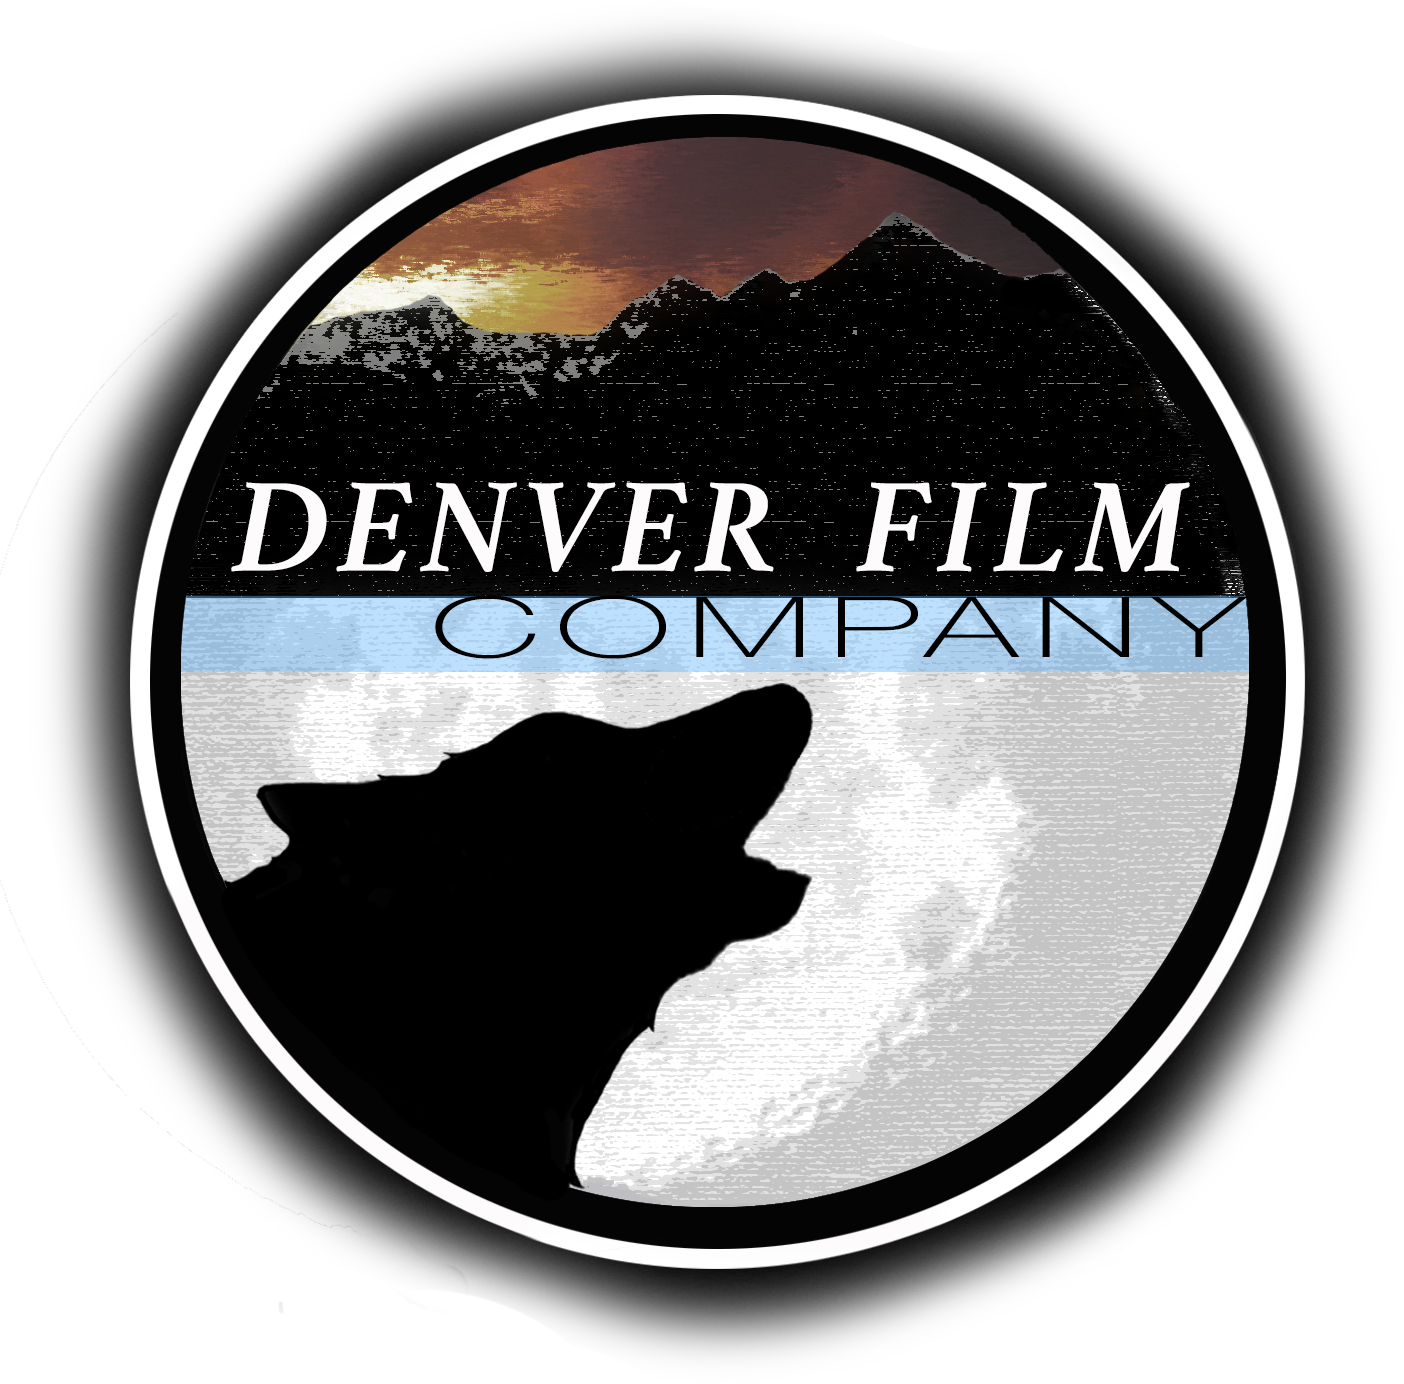 Denver Film Company